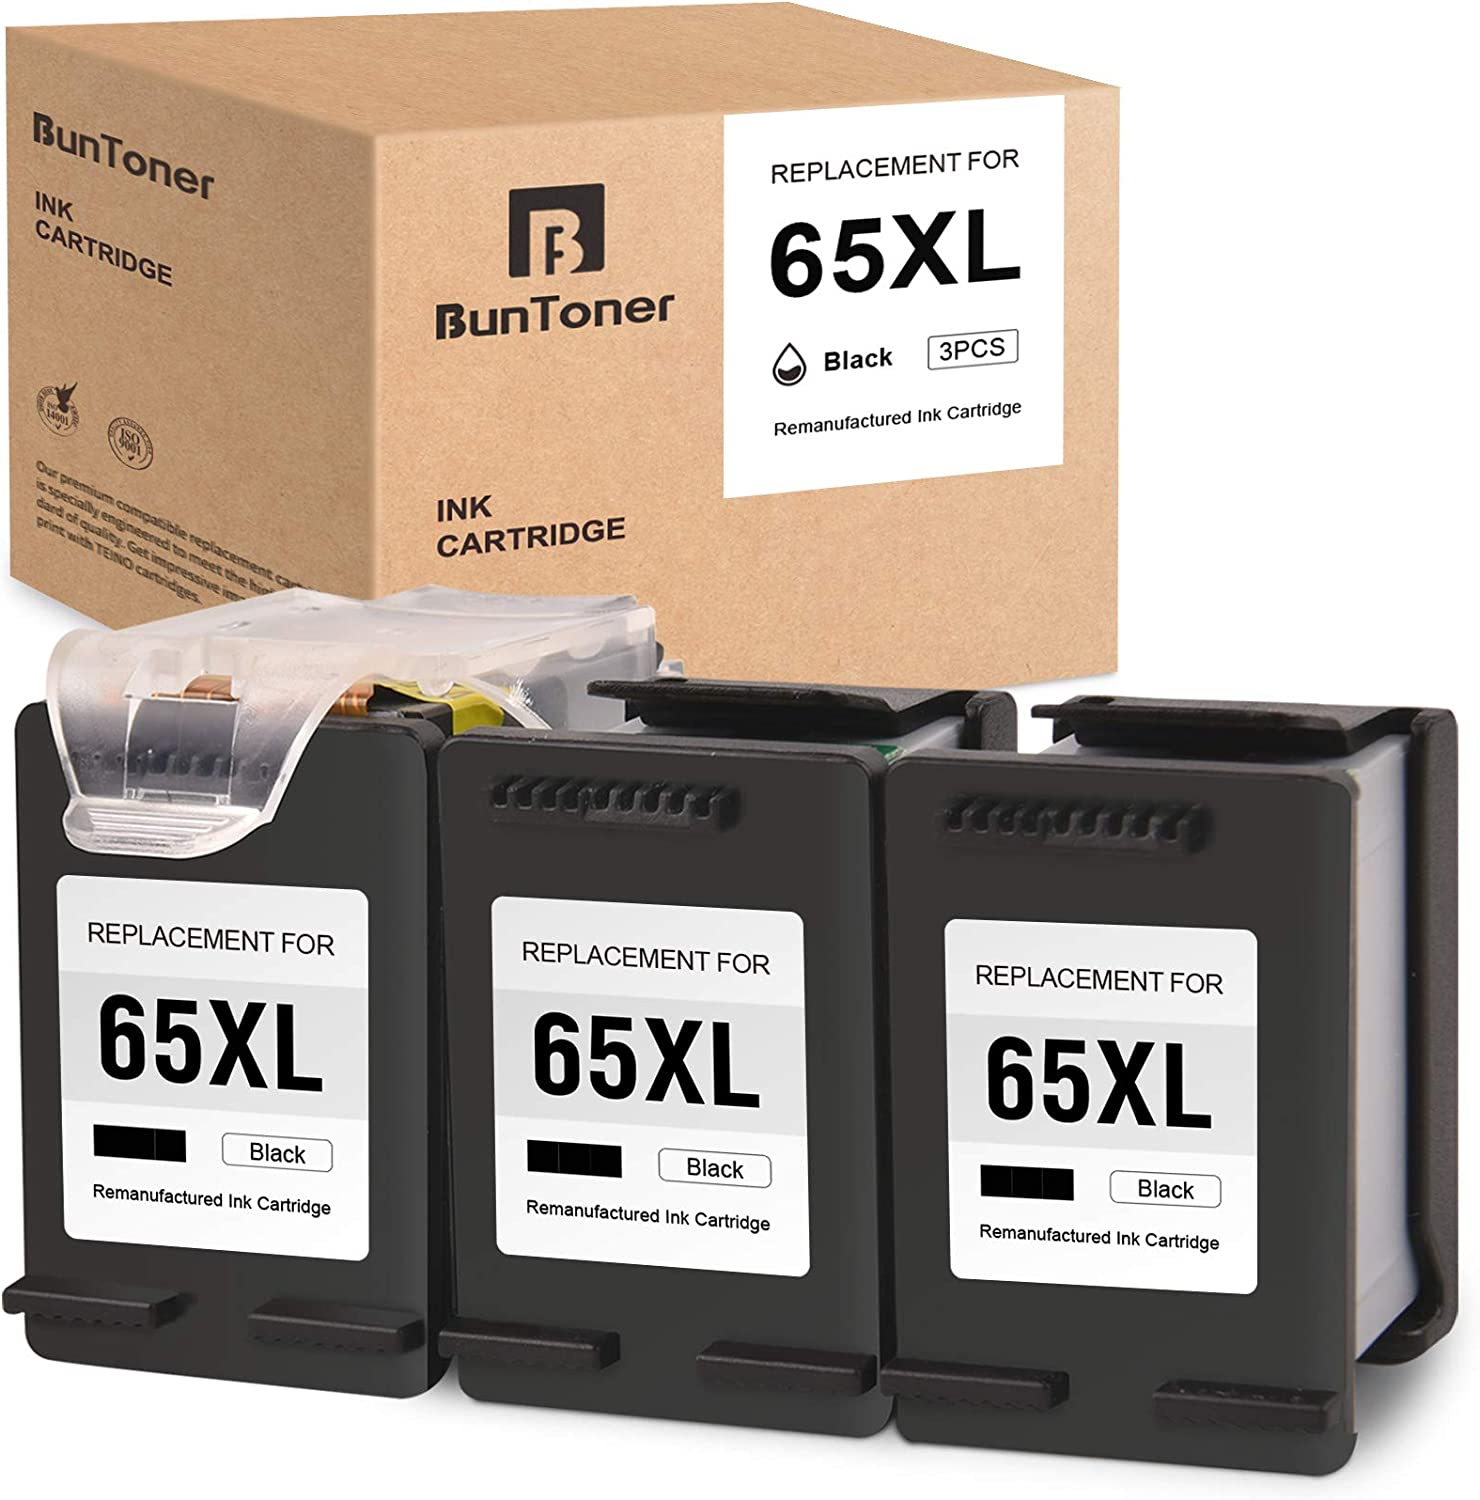 BUNTONER Remanufactured Ink Cartridges Replacement for HP 65 65XL use with HP Envy 5055 5052 5010 5030 DeskJet 3752 2622 3755 2652 2655 3720 2630 (3 Black Cartridges, 1 Print Head)